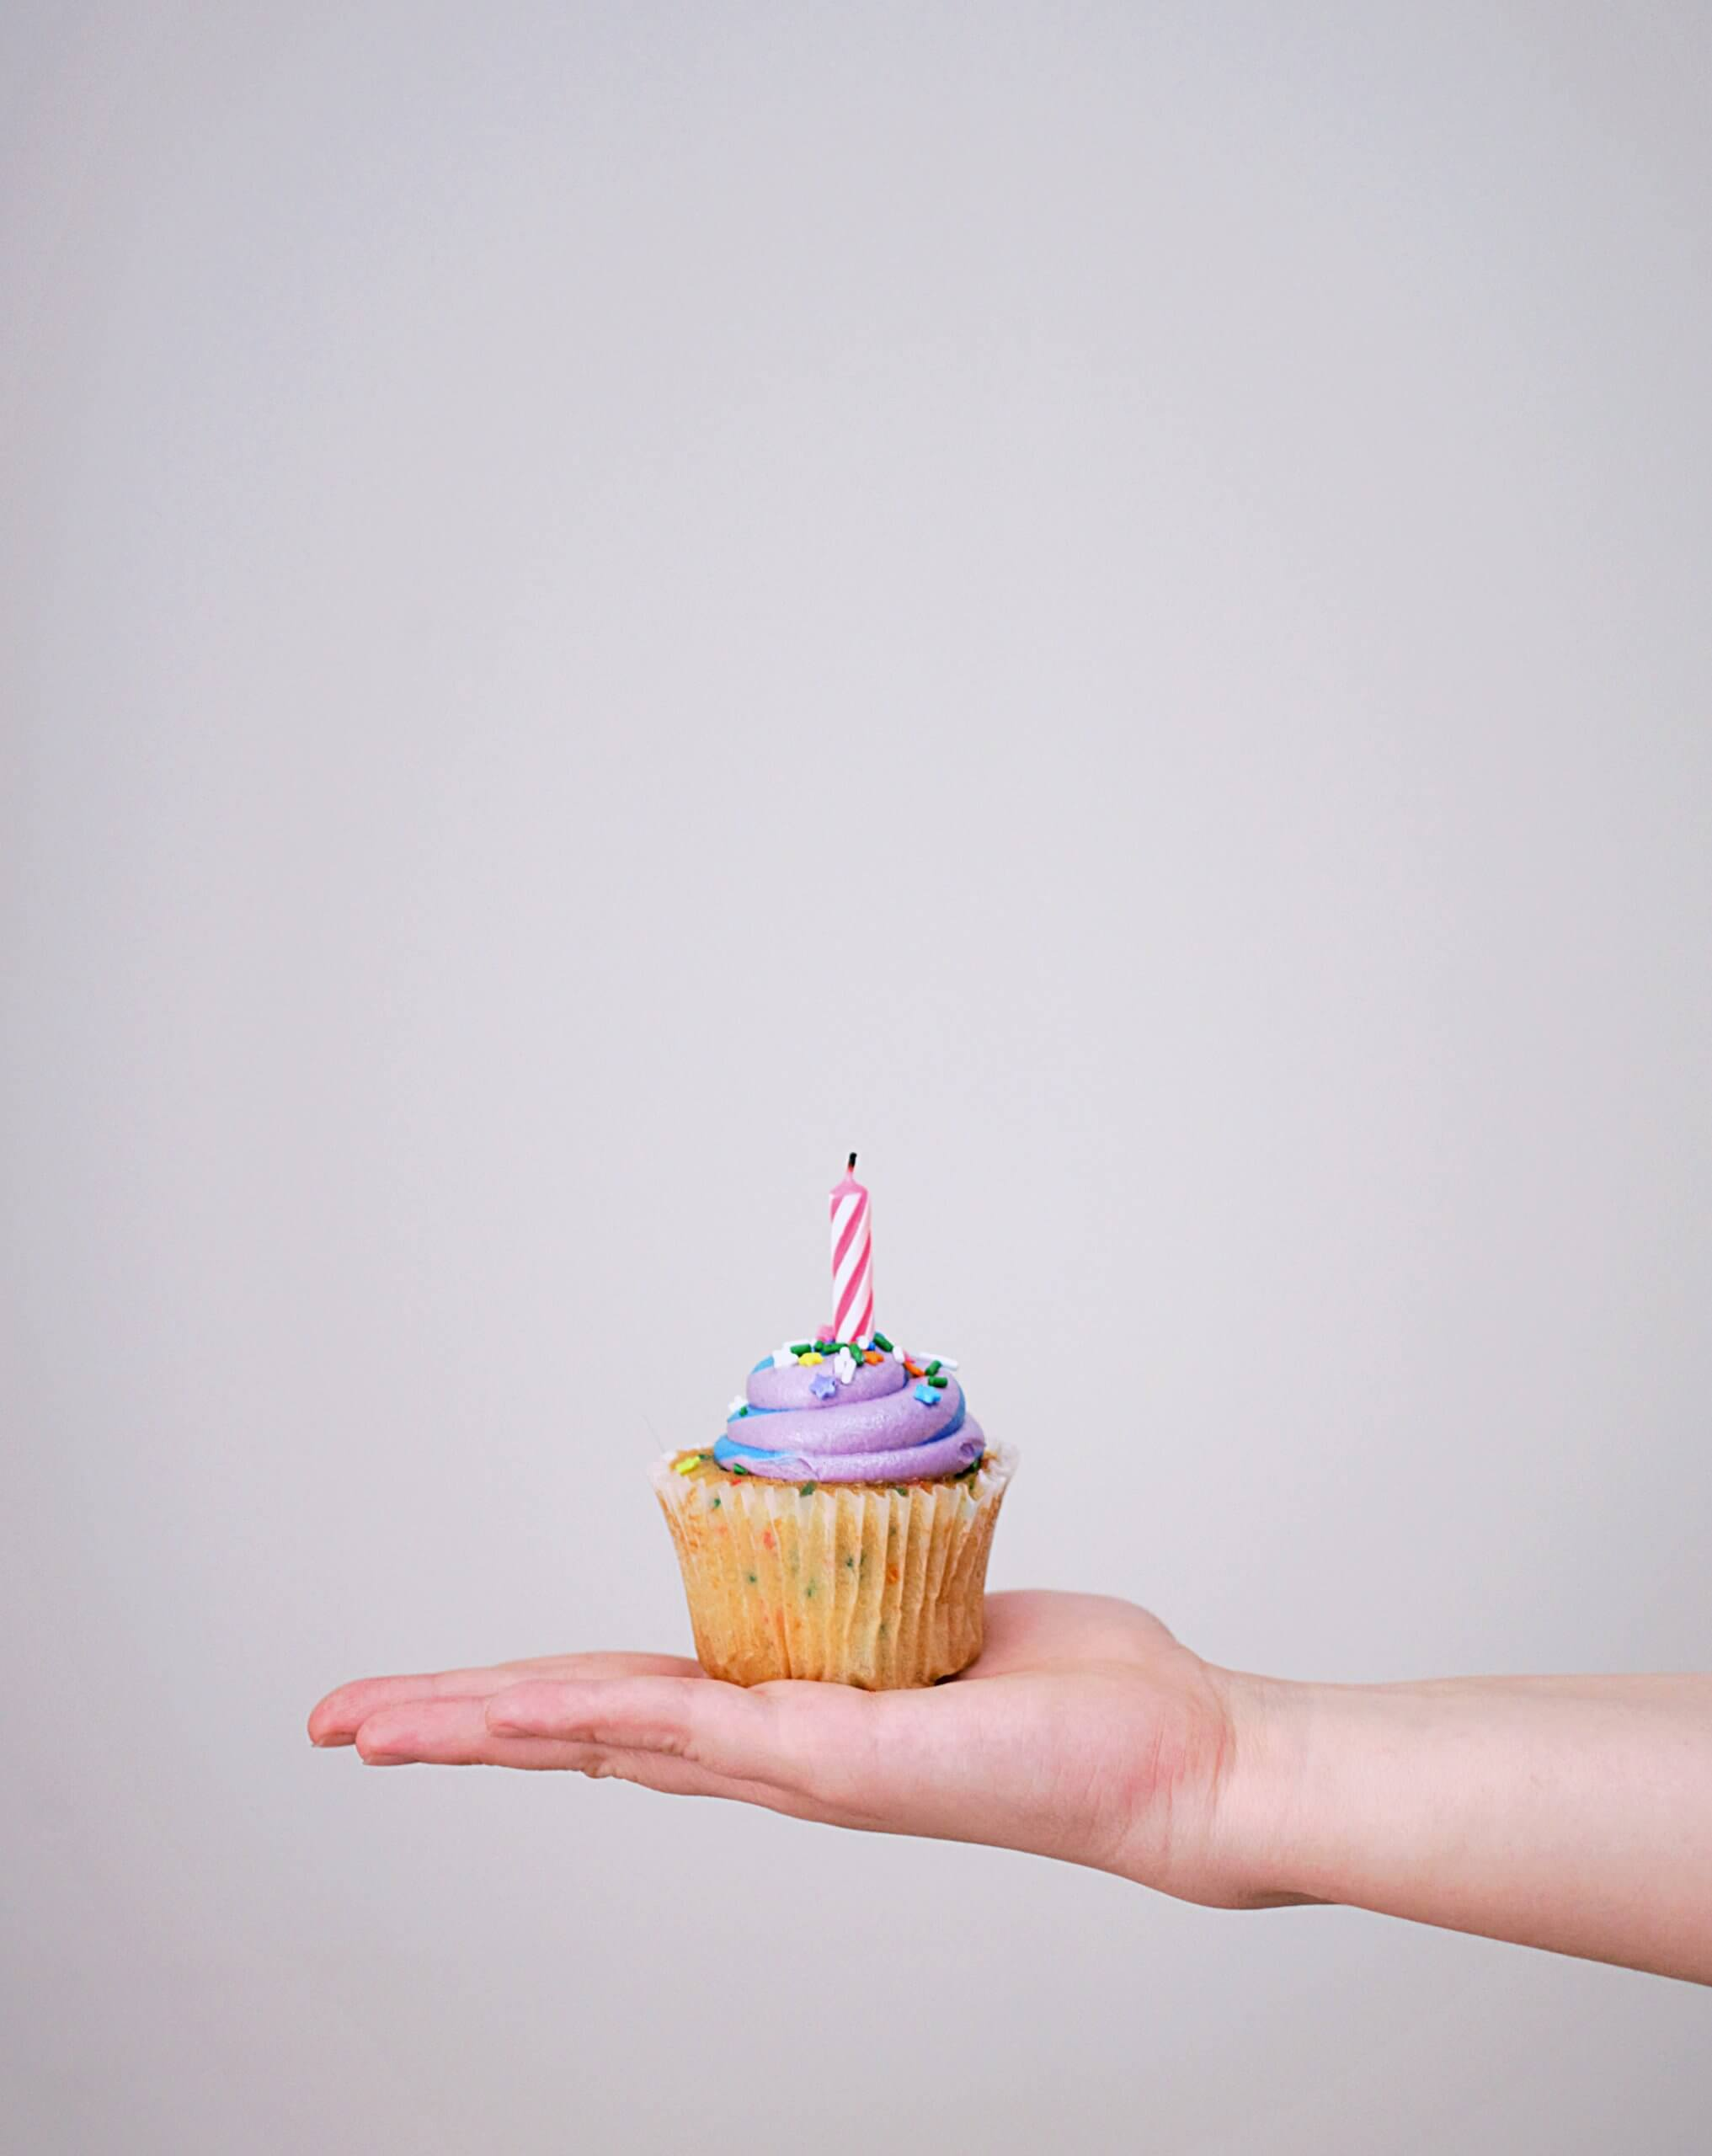 A lonely birthday cupcake